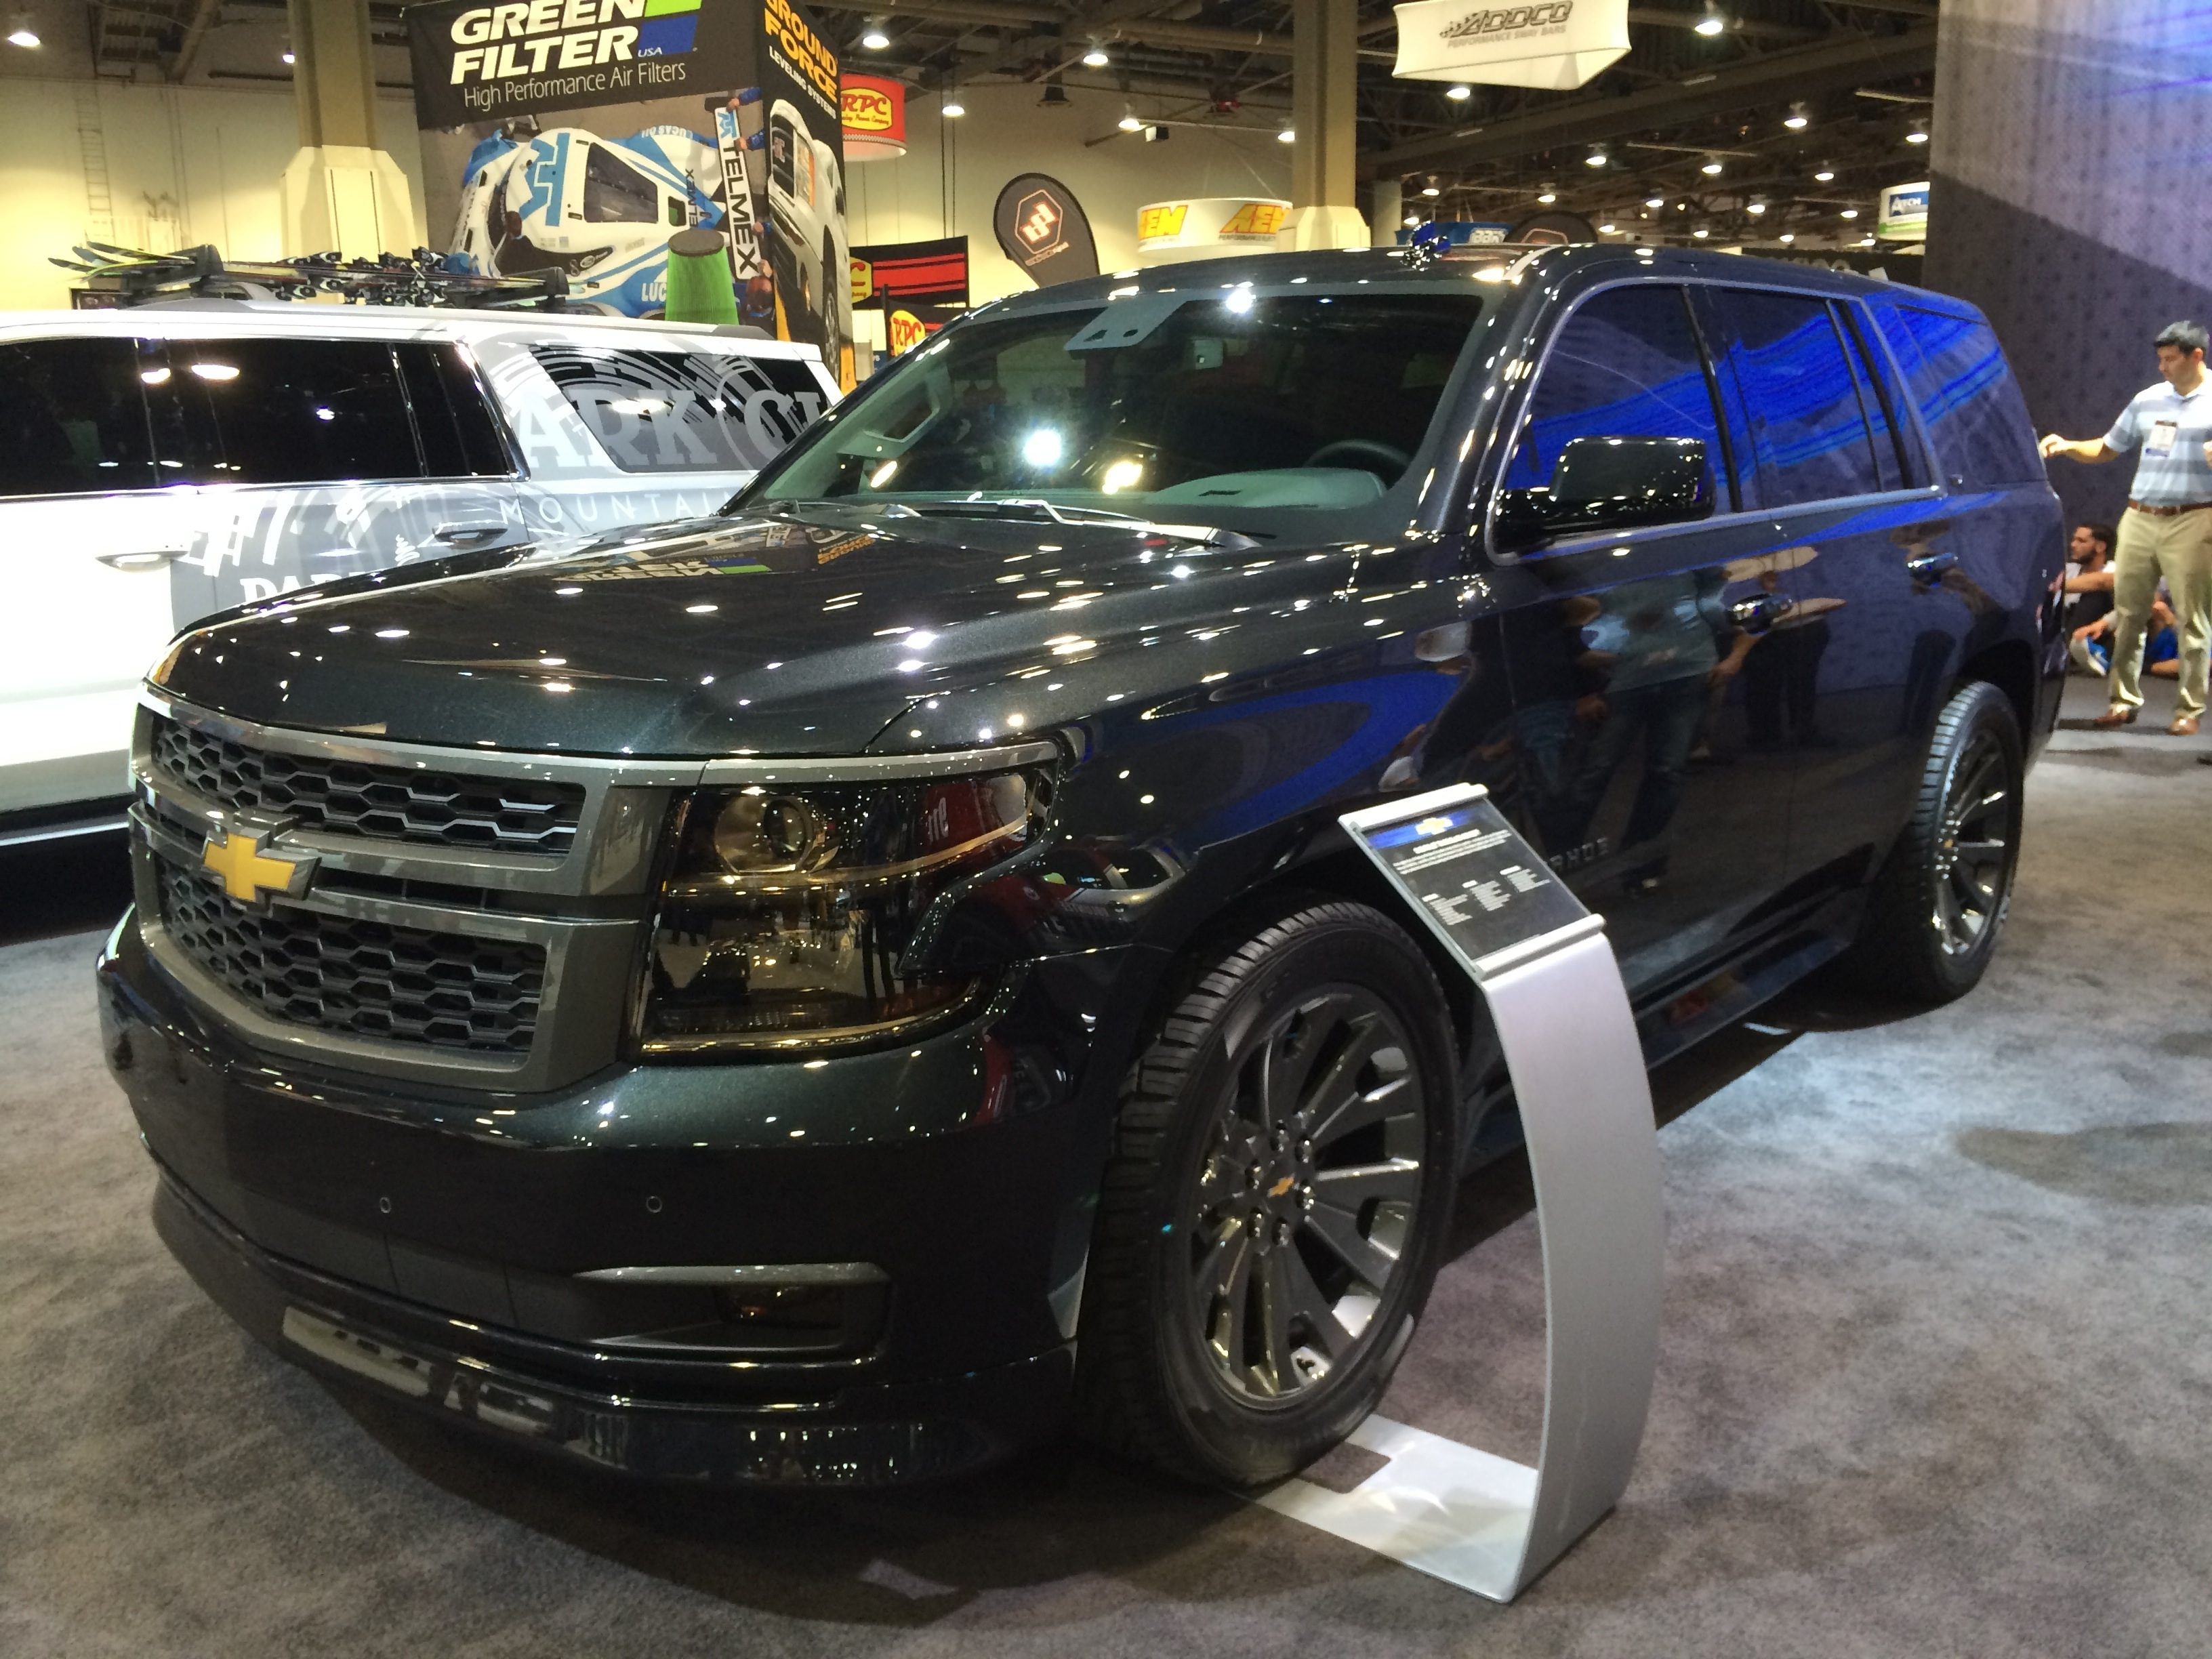 SEMA 2013: Best Of The Chevrolet Exhibit - Rides Magazine